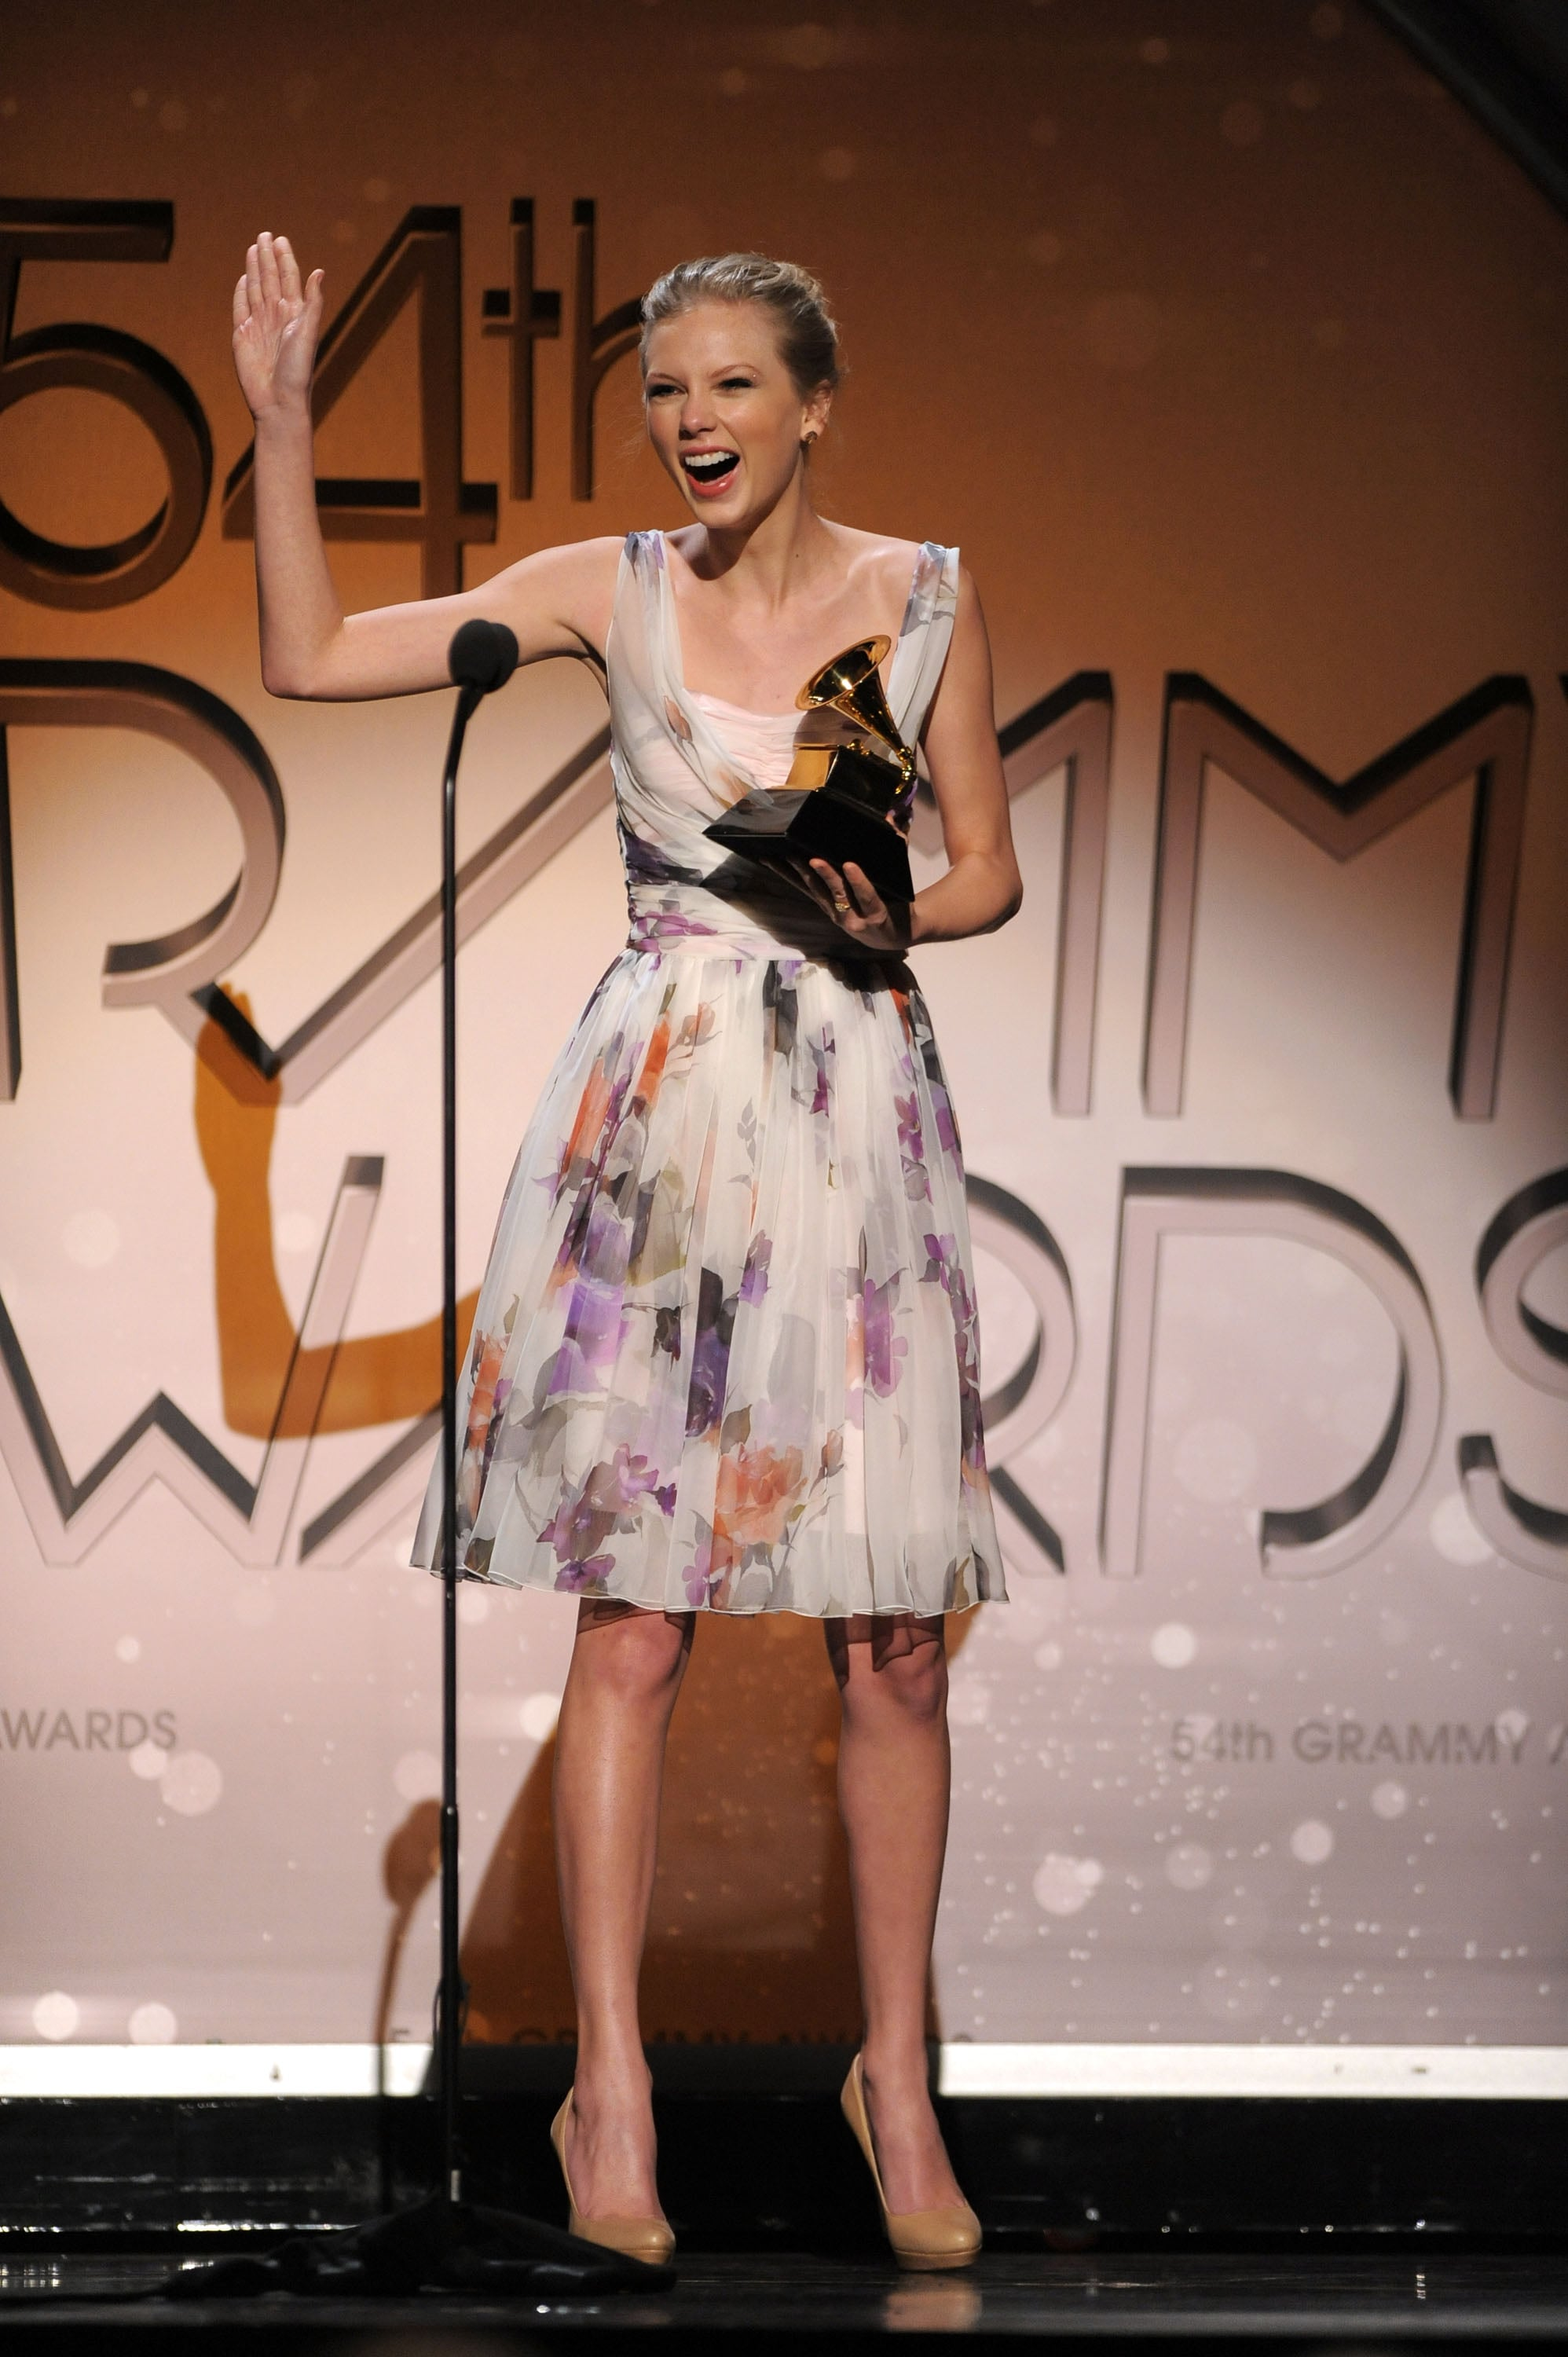 She celebrated her Grammy win backstage in the press room in February 2012.